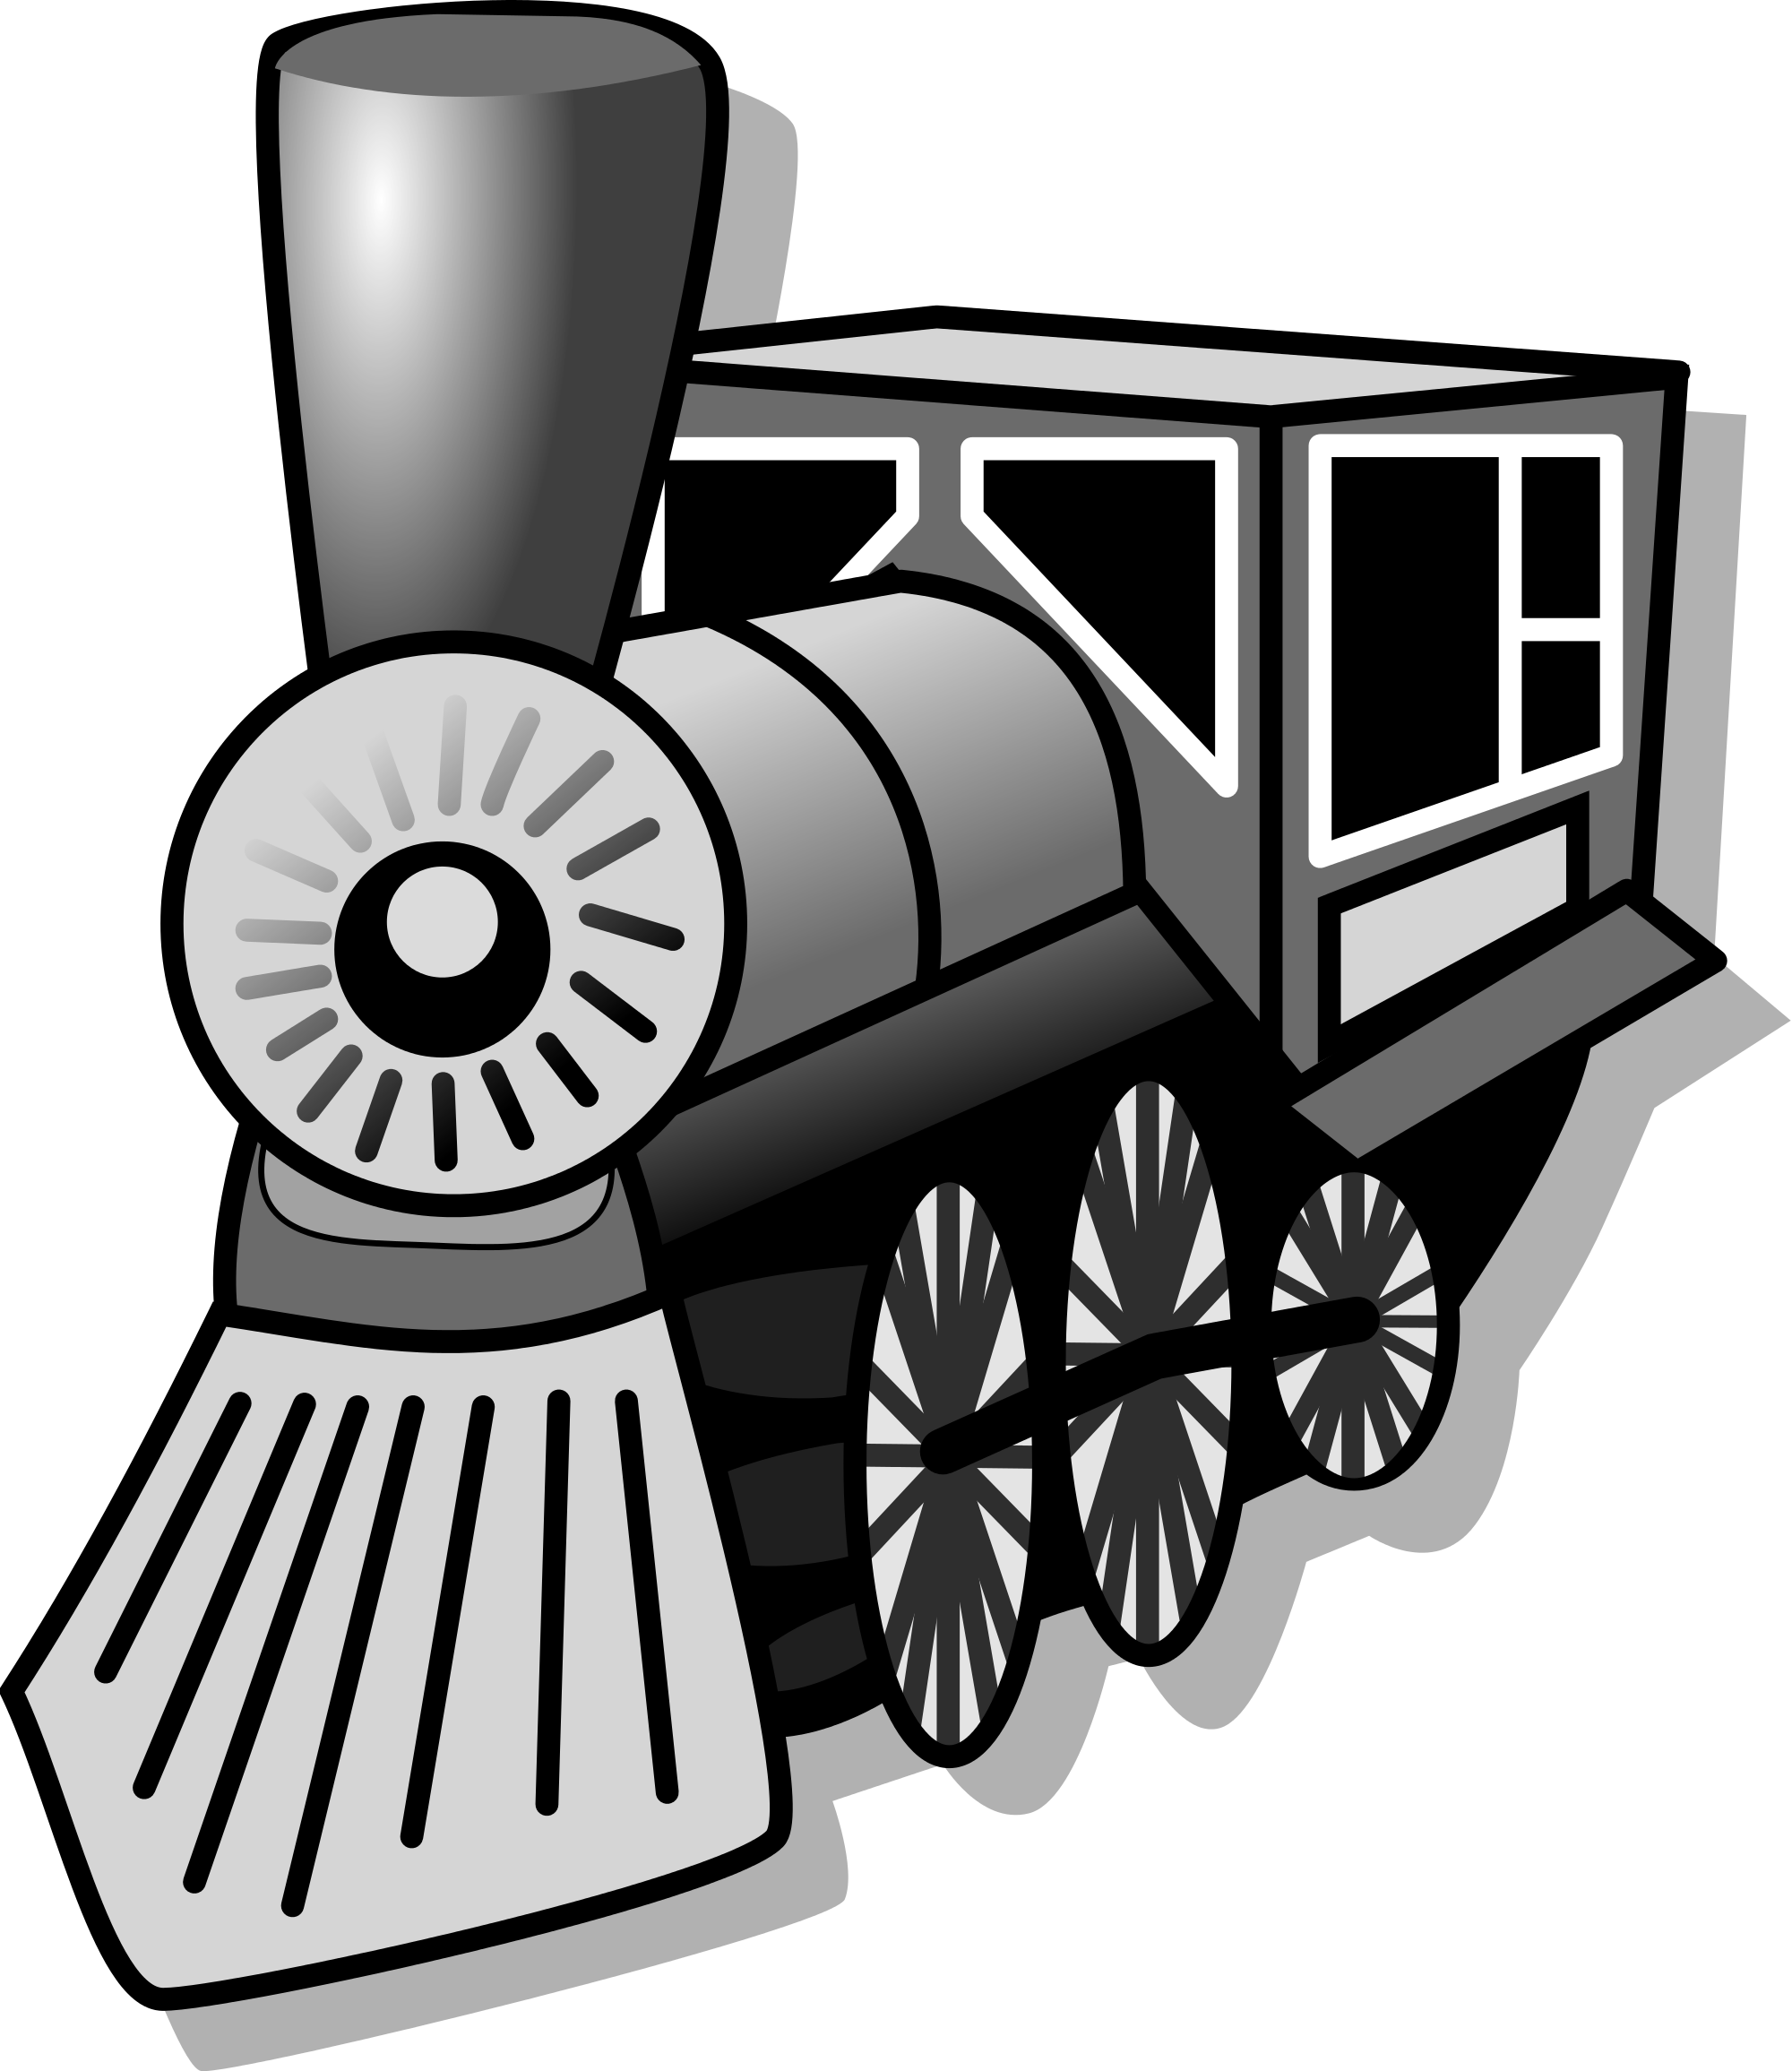 train clipart front view #4